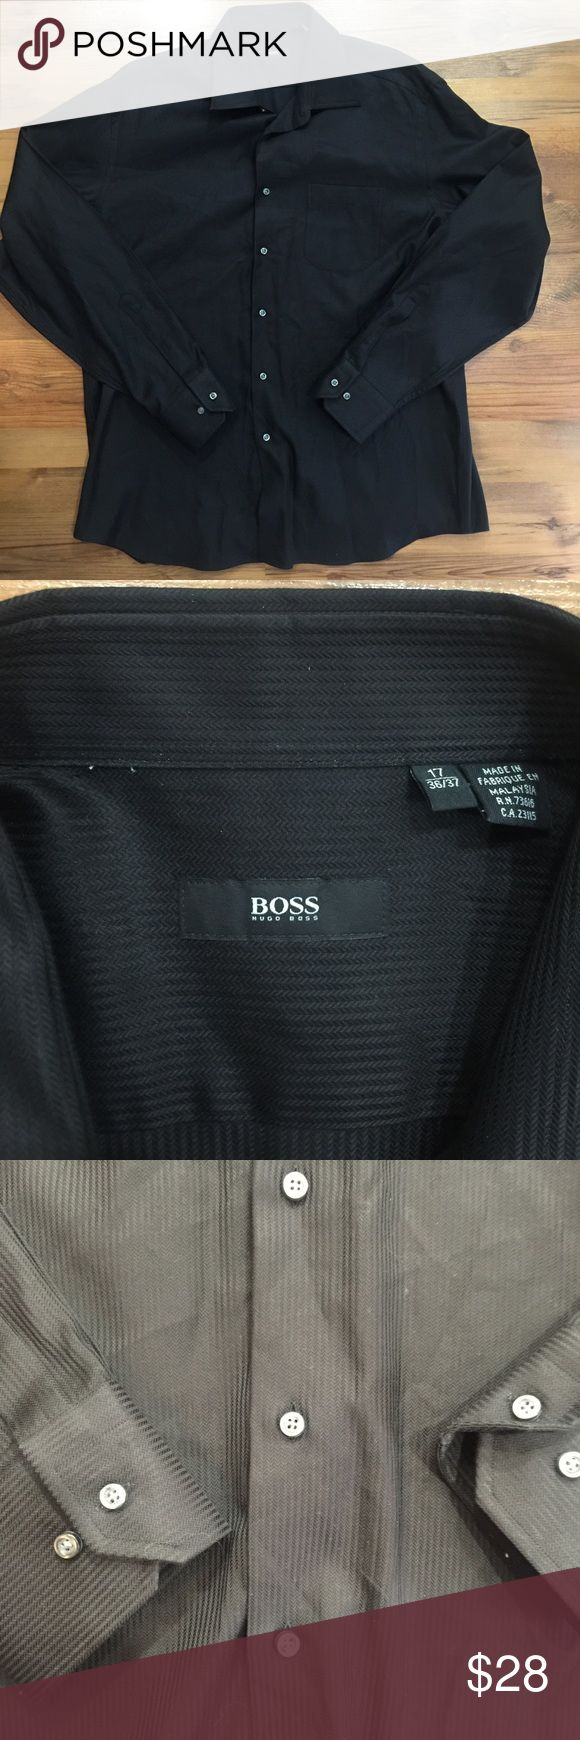 Big and Tall Hugo Boss Long Sleeve Button Up Shirt Big and tall size XL. Gently worn. No flaws. See pictures for details. Hugo Boss Shirts Dress Shirts